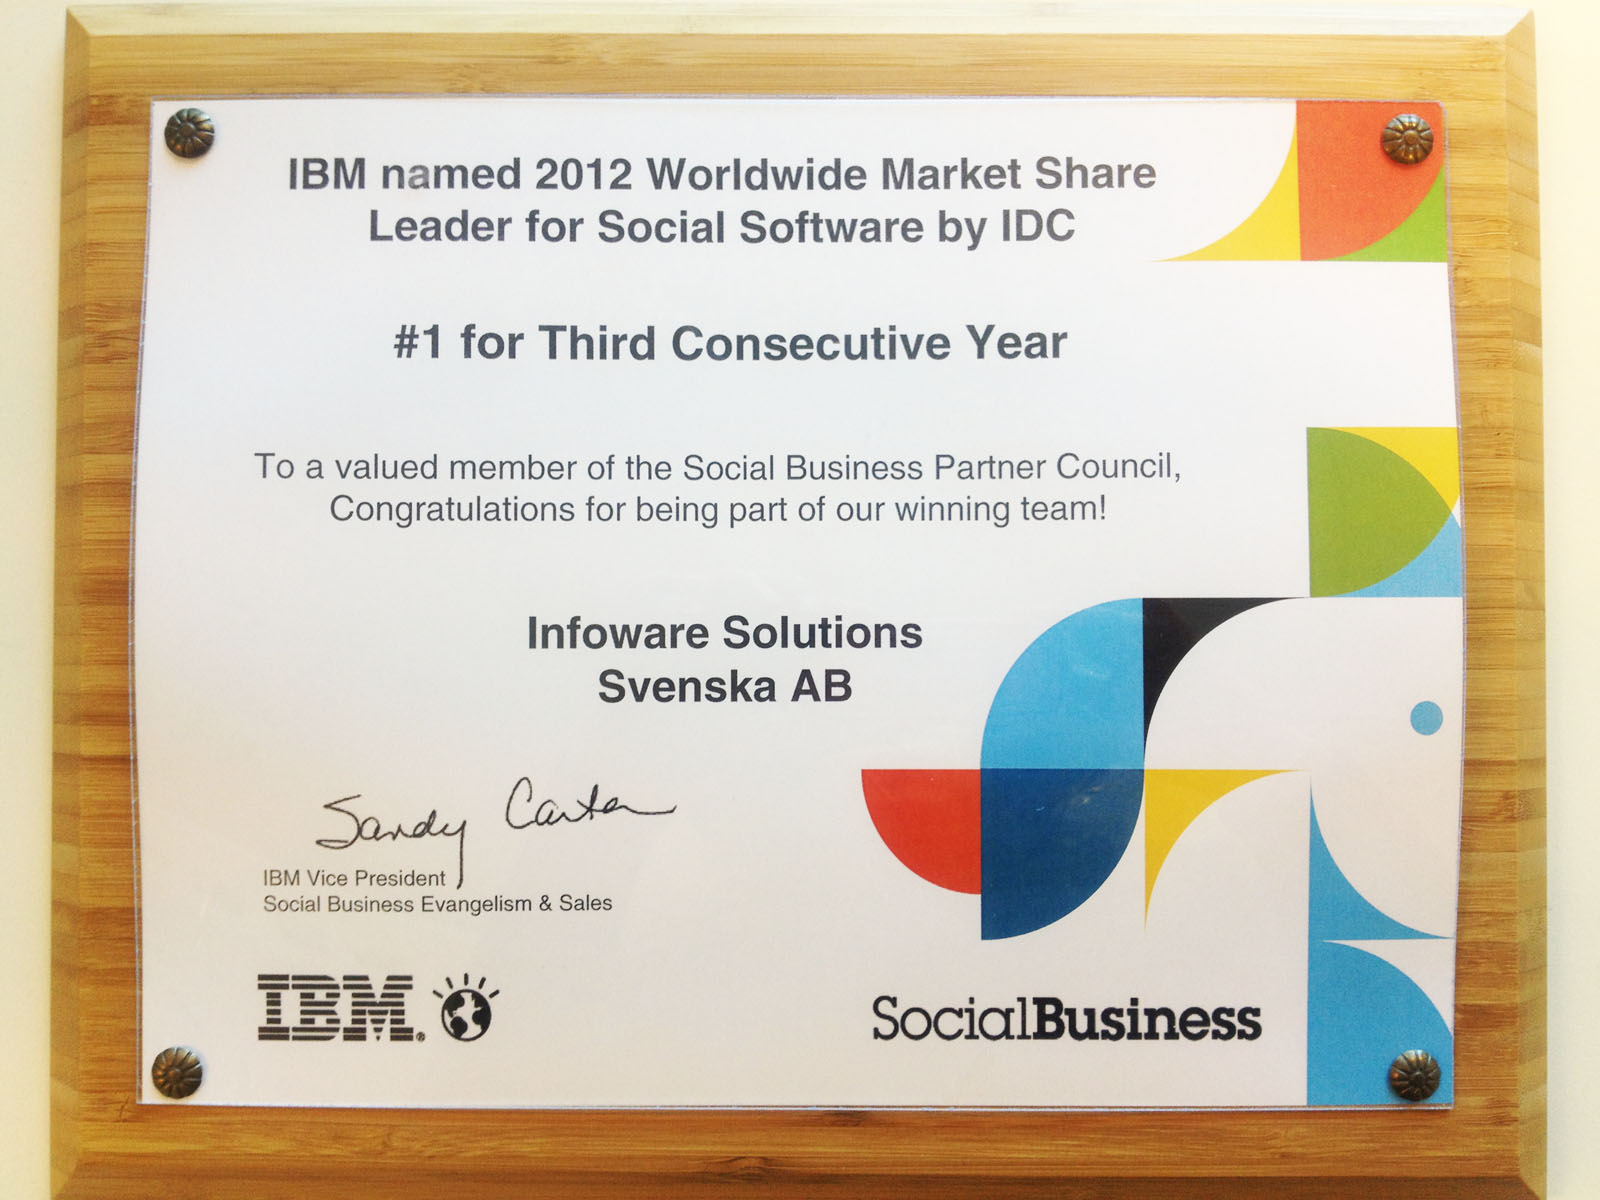 Infoware - part of IBM's winning team